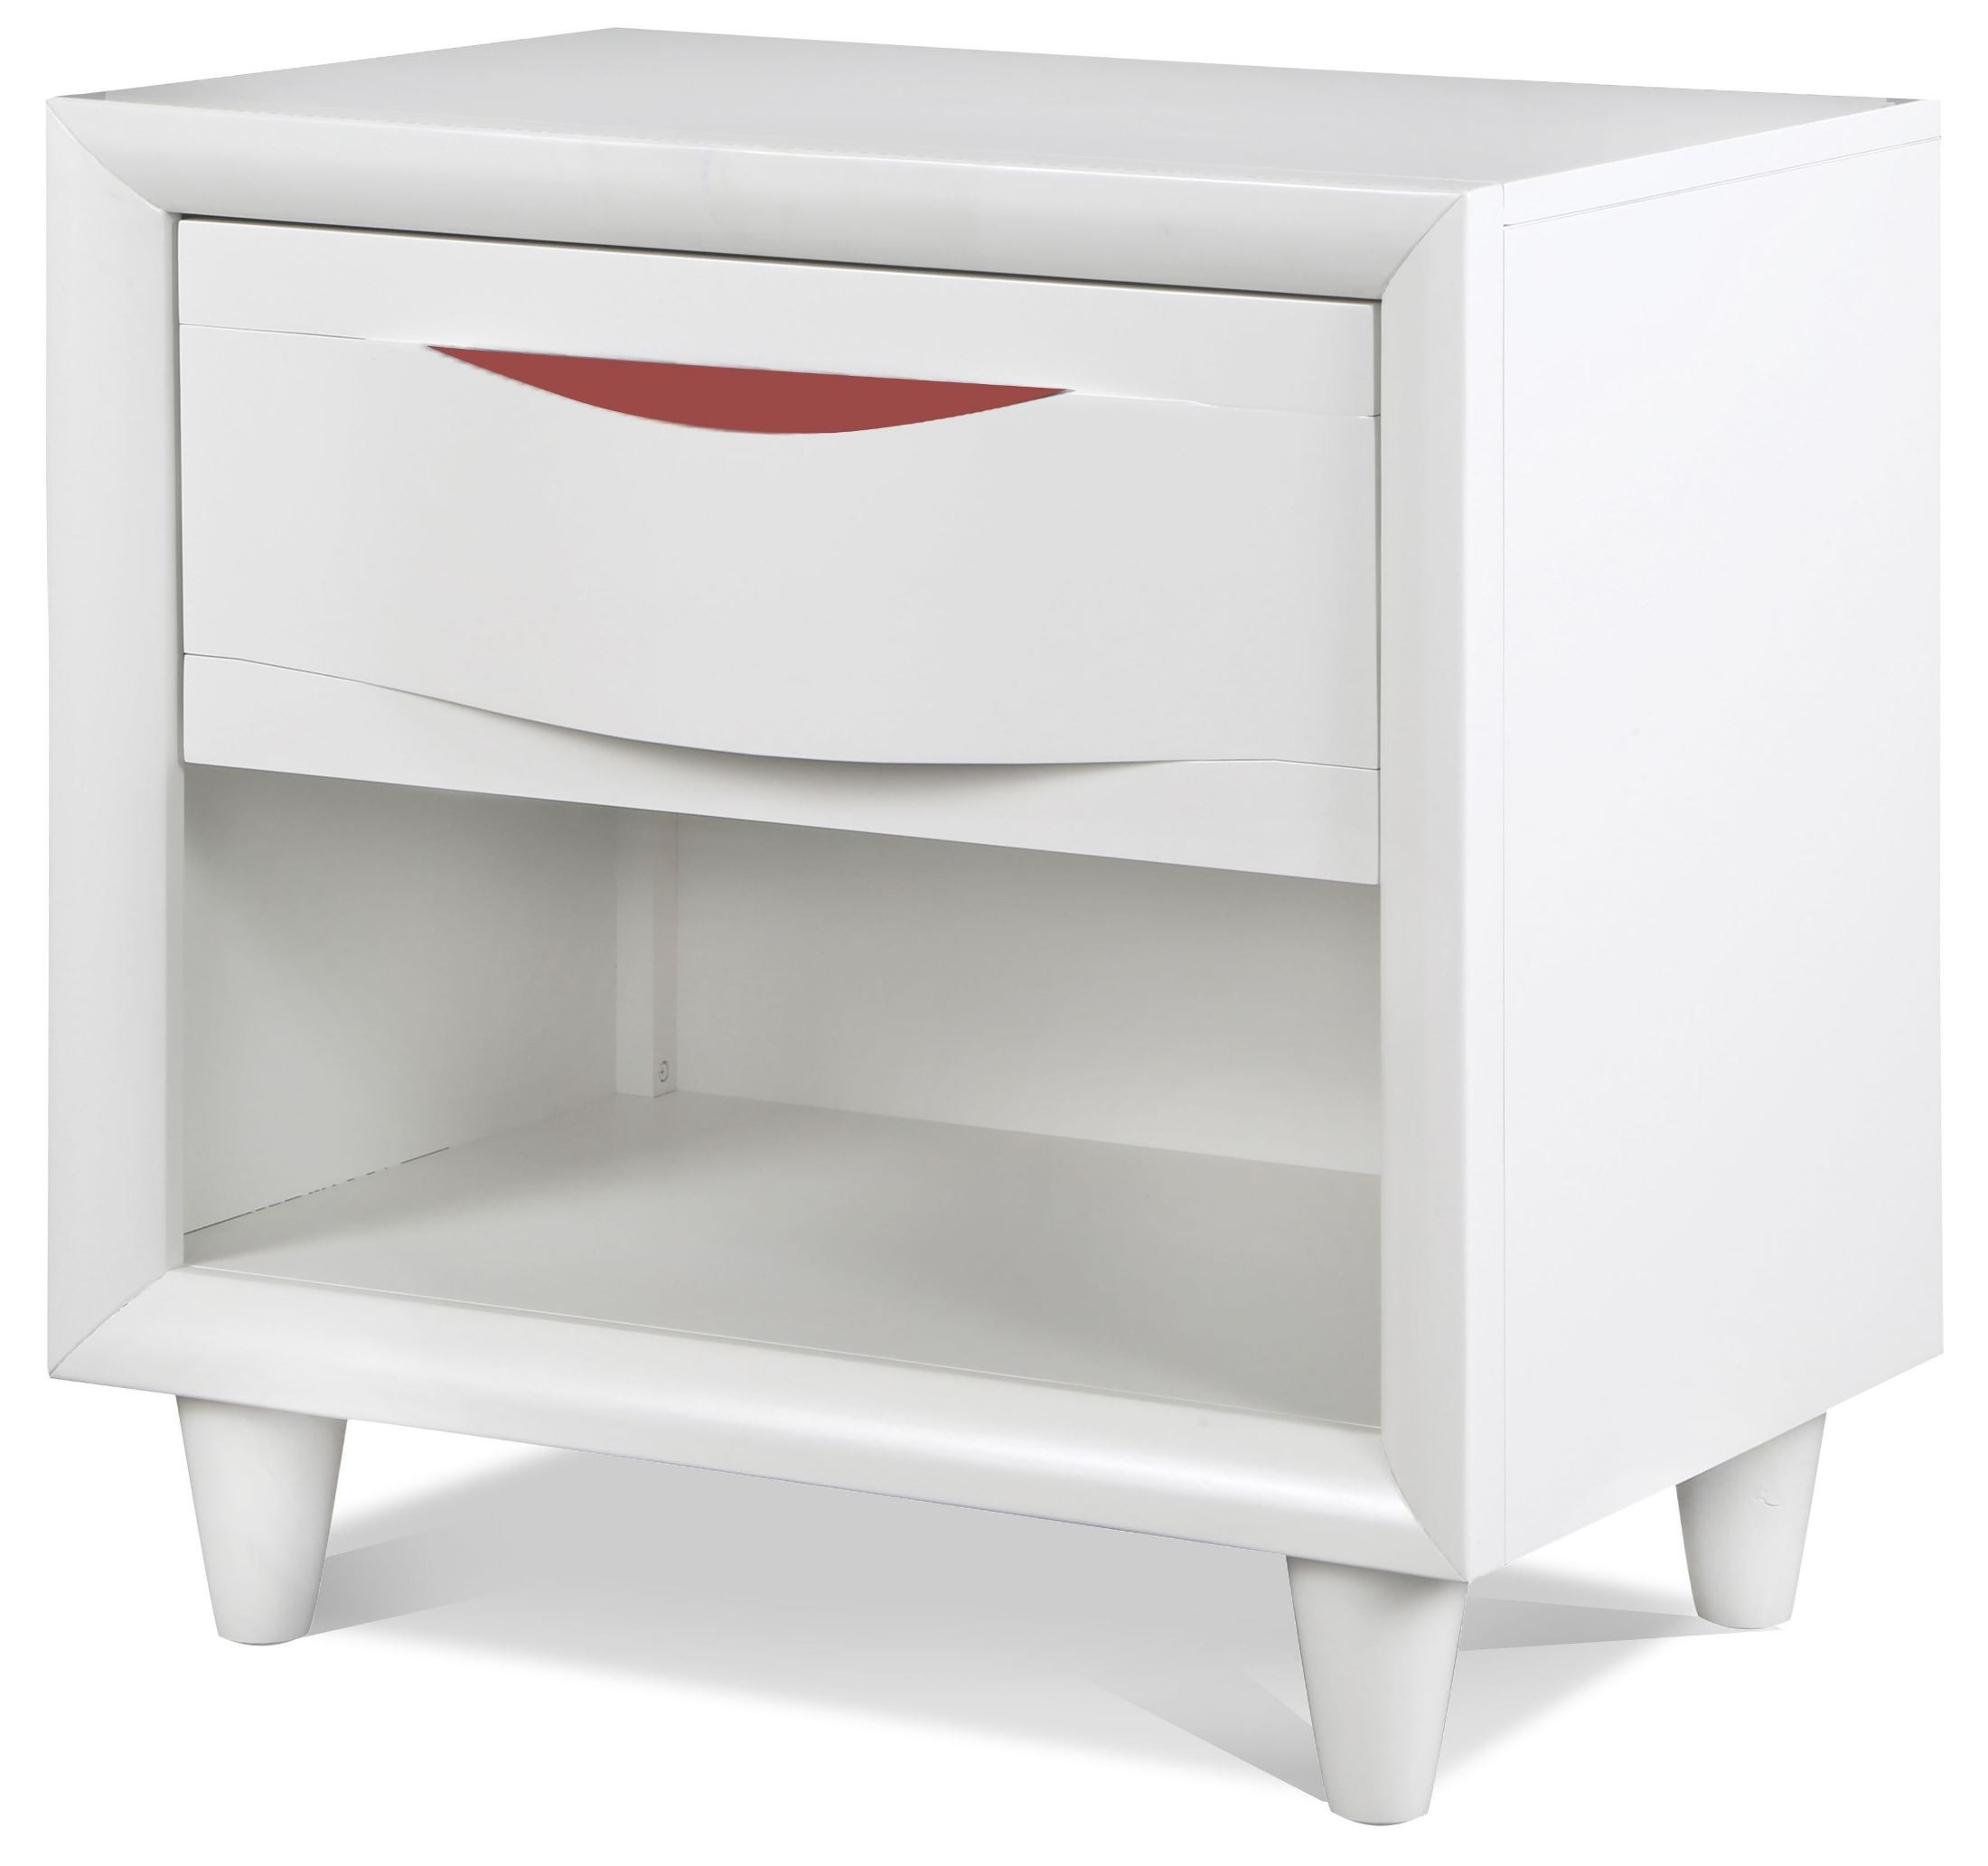 Crayola colors snow white wood open nightstand y2647 05 for White wood nightstand